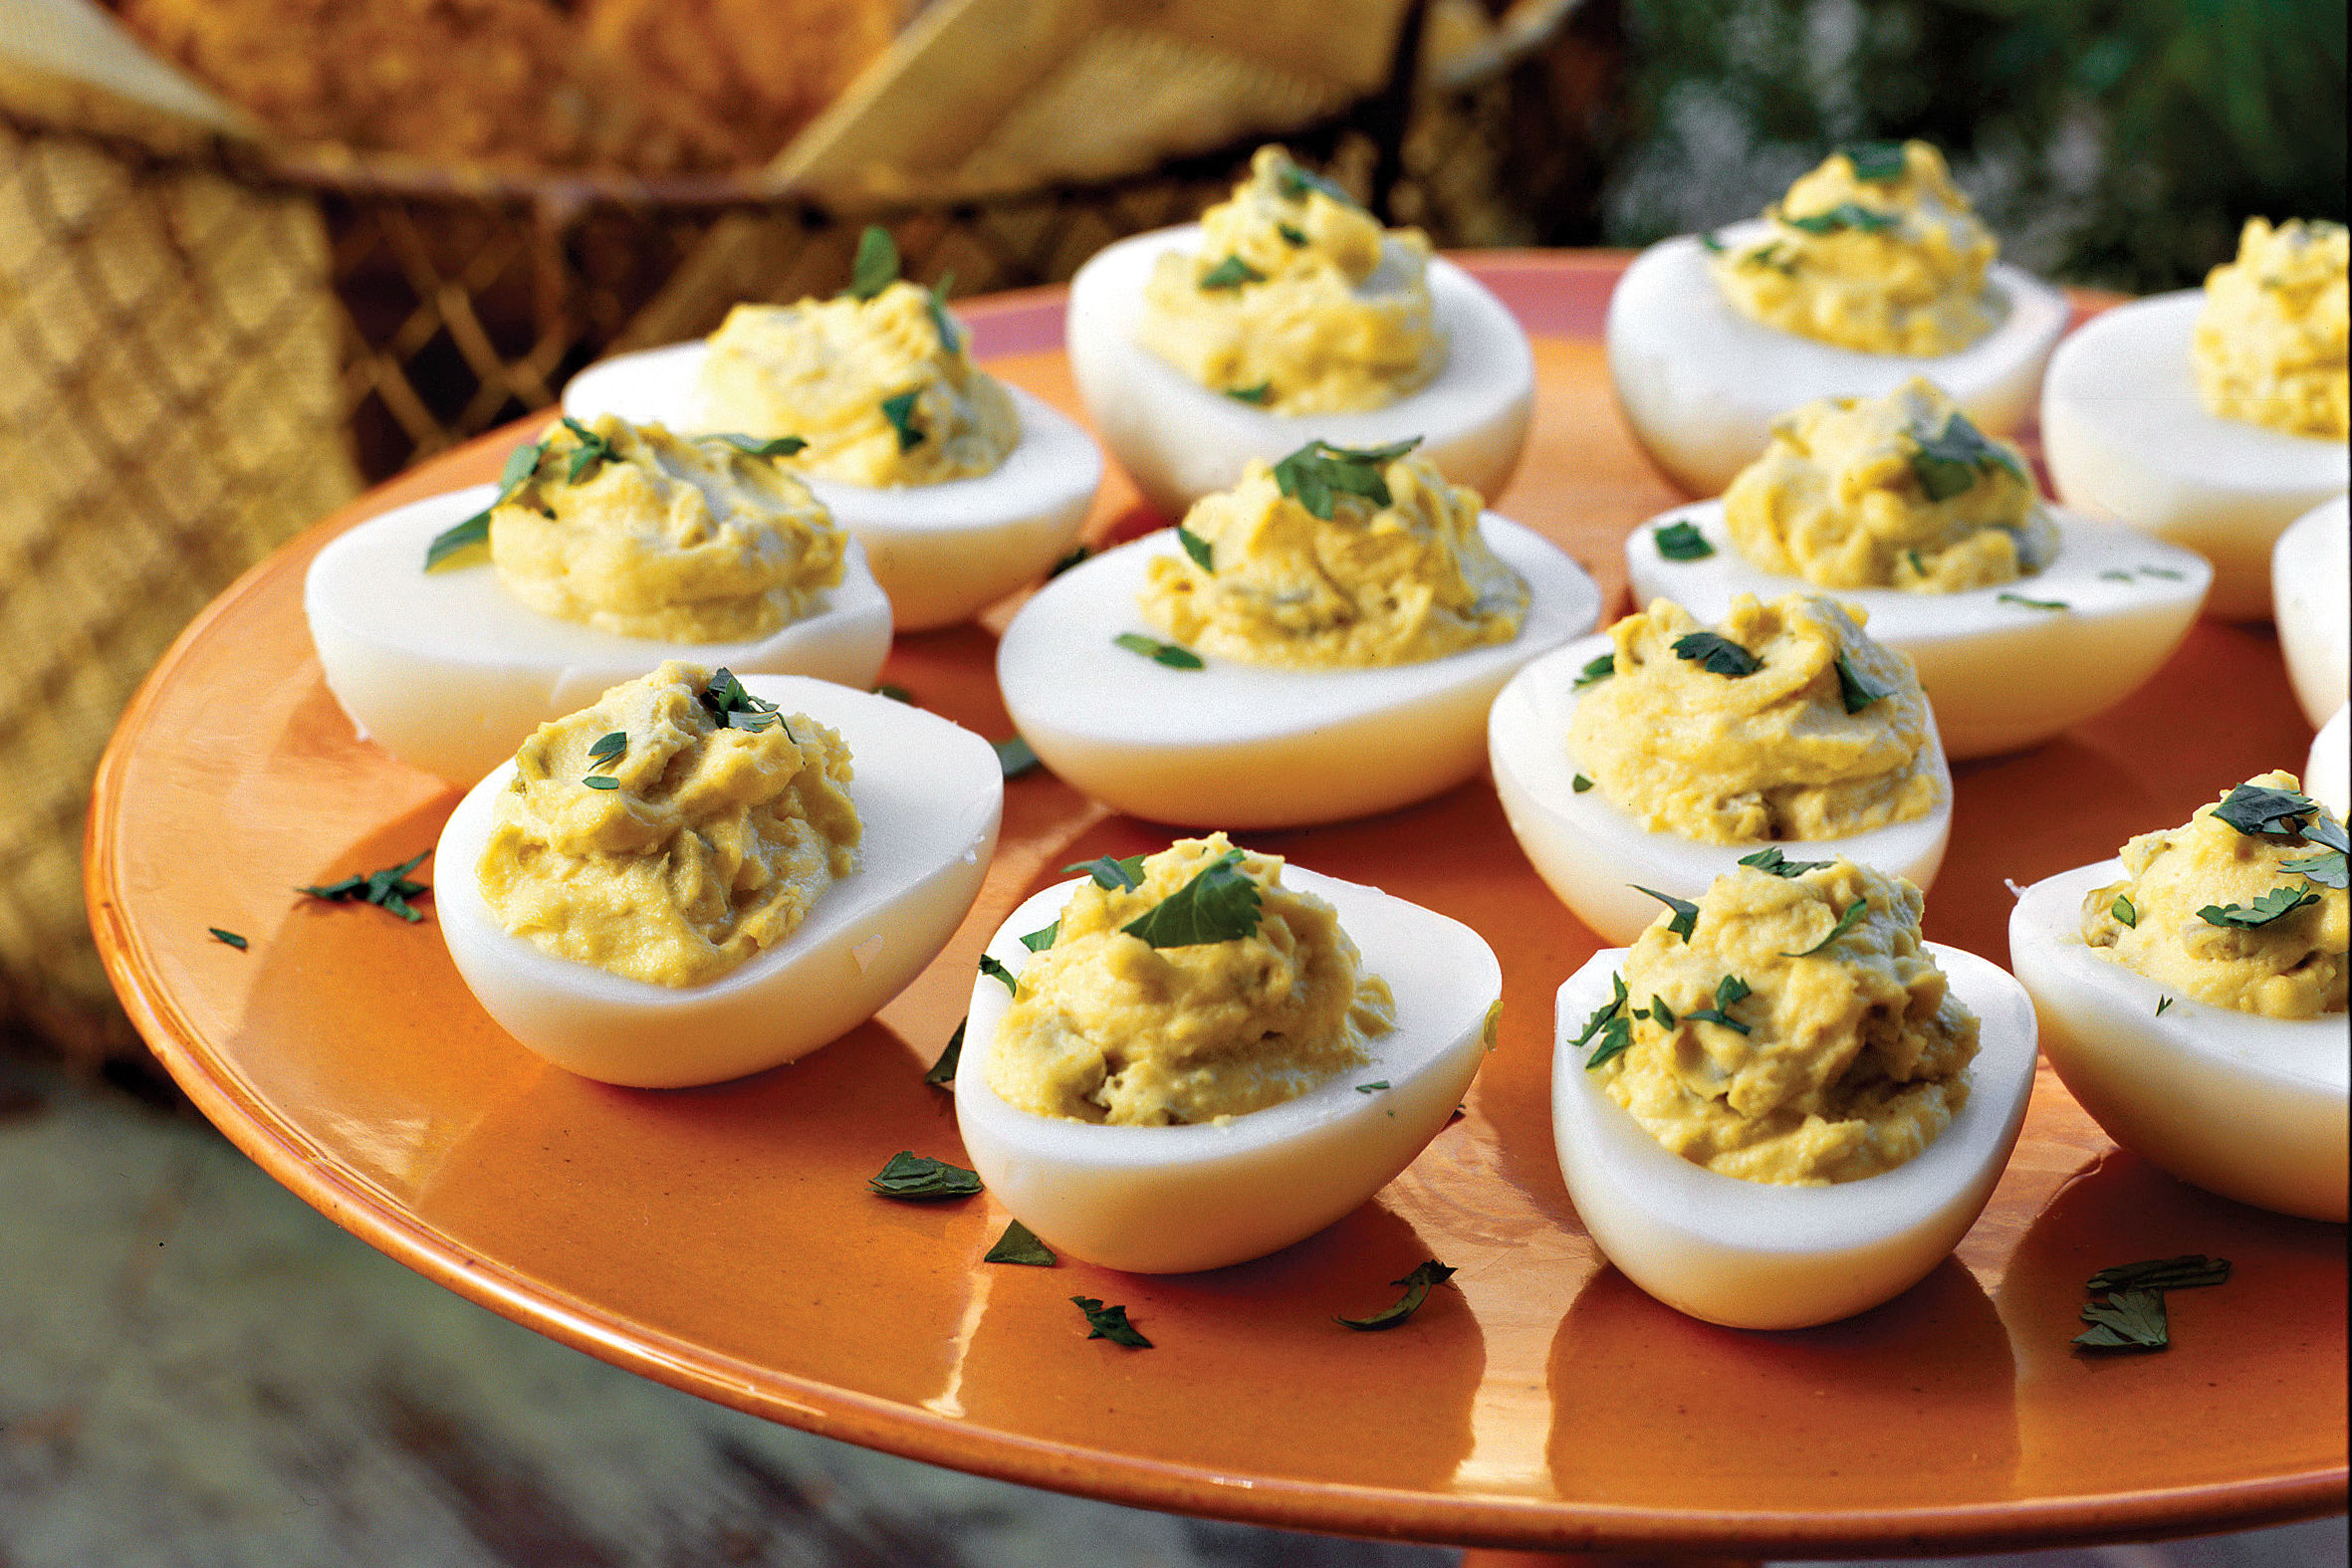 Here's What You Should Know About Serving Deviled Eggs on Biscuits